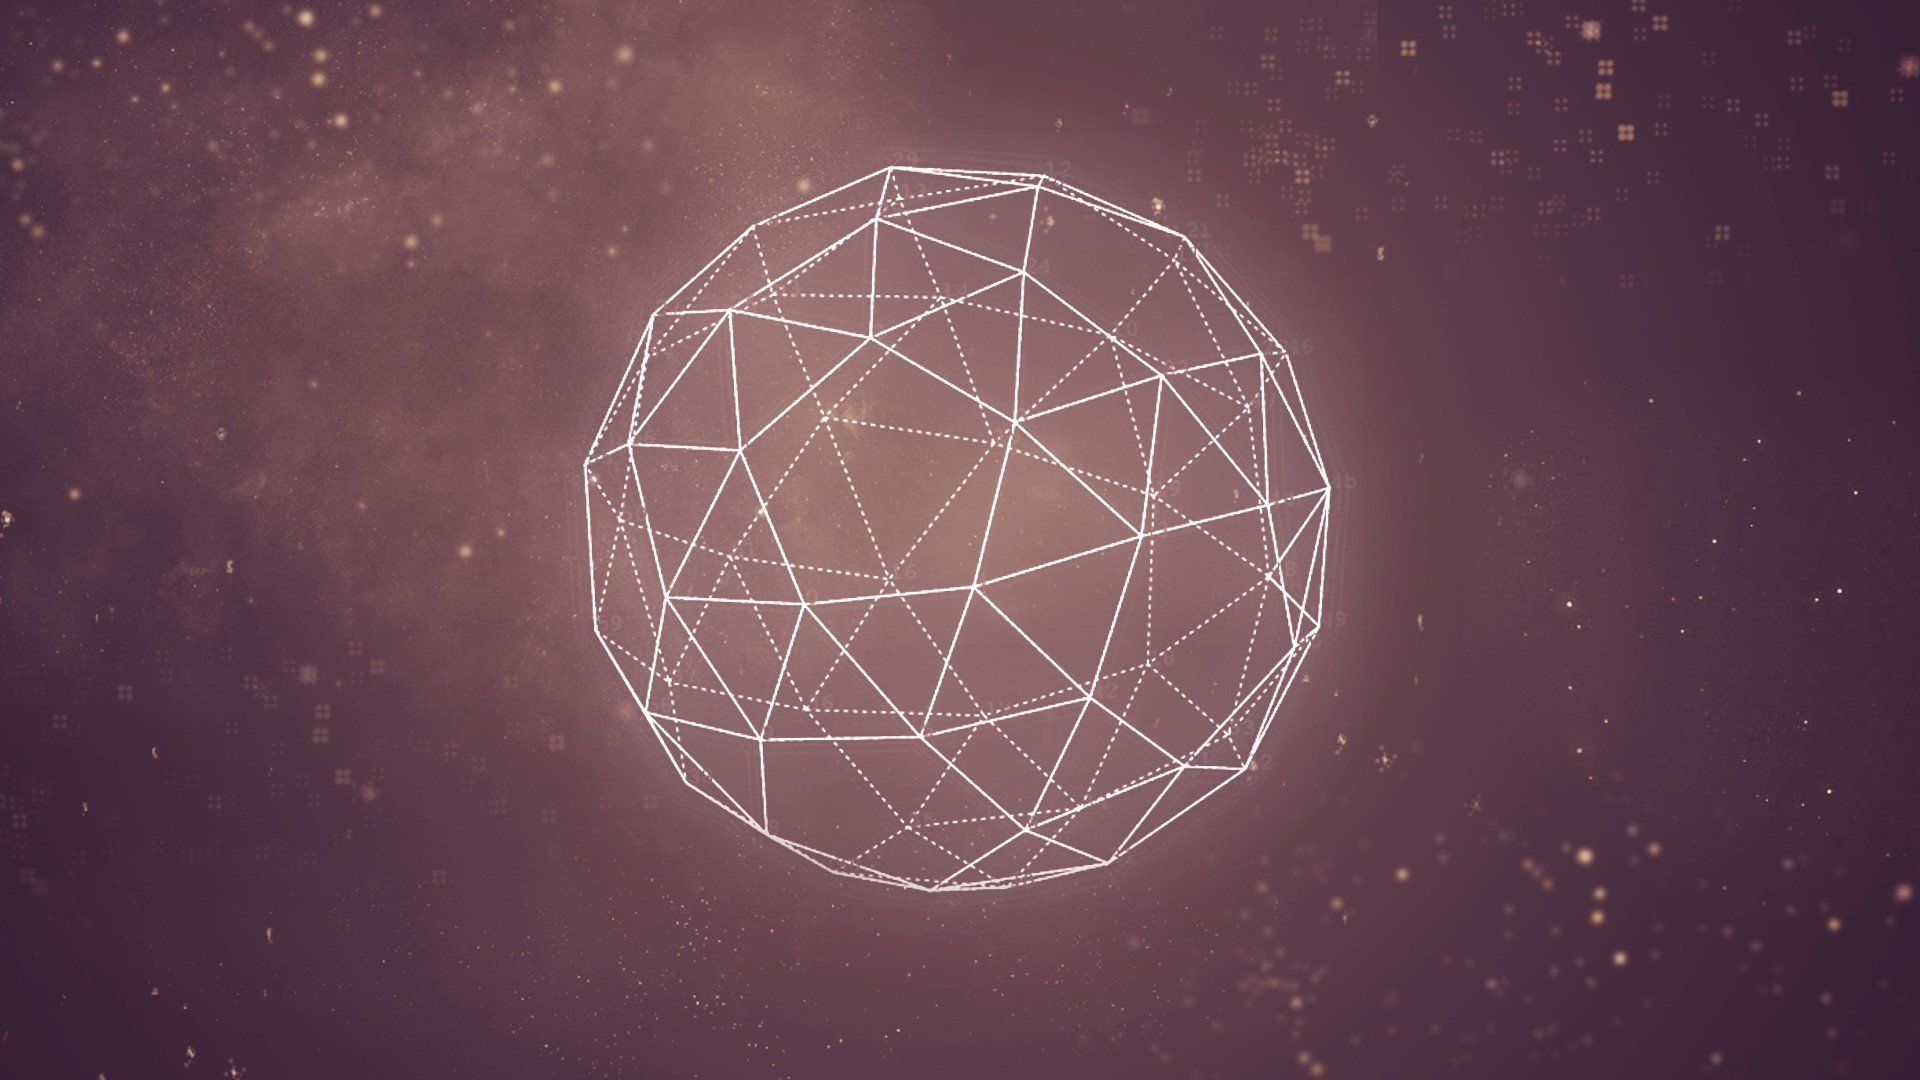 Space Abstract Graphic Wallpaper Geometry Minimalisti